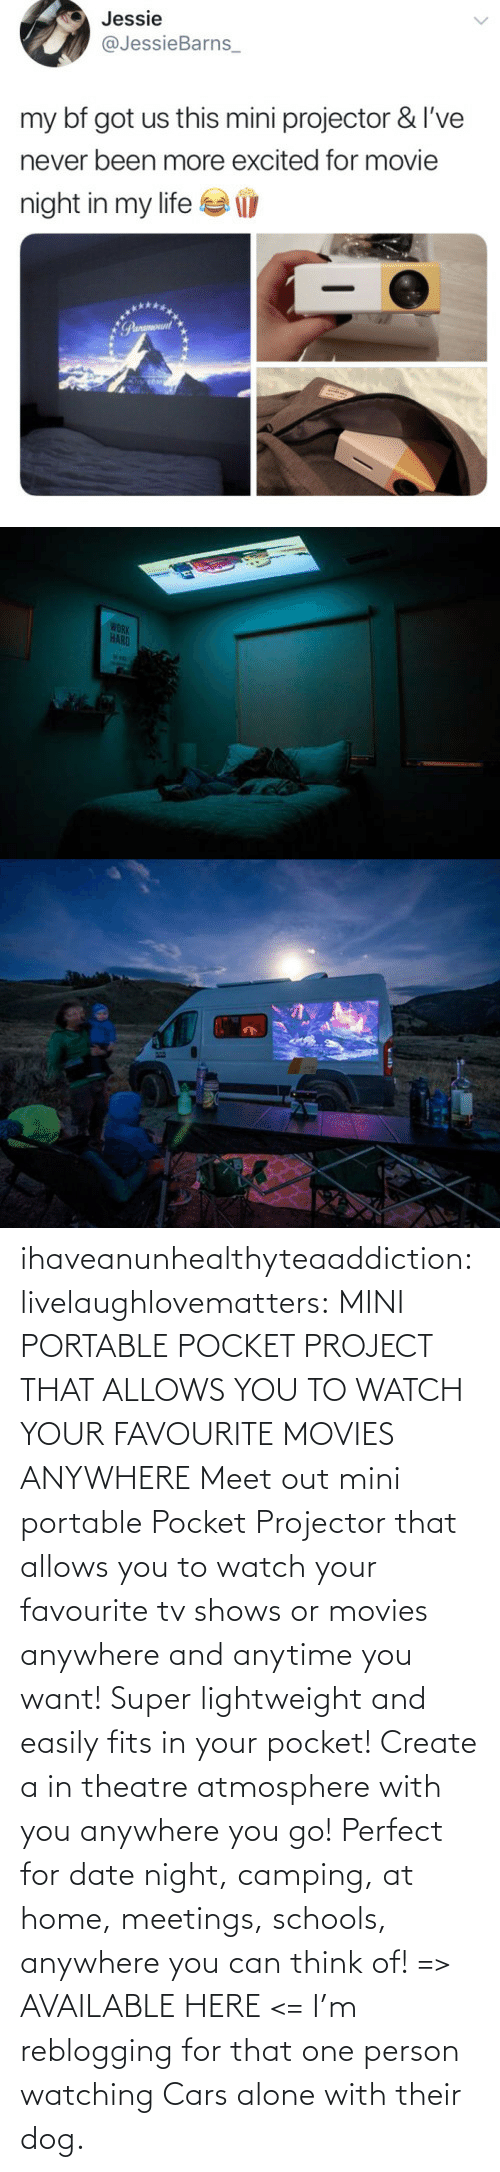 Being alone: ihaveanunhealthyteaaddiction:  livelaughlovematters: MINI PORTABLE POCKET PROJECT THAT ALLOWS YOU TO WATCH YOUR FAVOURITE MOVIES ANYWHERE Meet out mini portable Pocket Projector that allows you to watch your favourite tv shows or movies anywhere and anytime you want! Super lightweight and easily fits in your pocket! Create a in theatre atmosphere with you anywhere you go! Perfect for date night, camping, at home, meetings, schools, anywhere you can think of! => AVAILABLE HERE <=    I'm reblogging for that one person watching Cars alone with their dog.